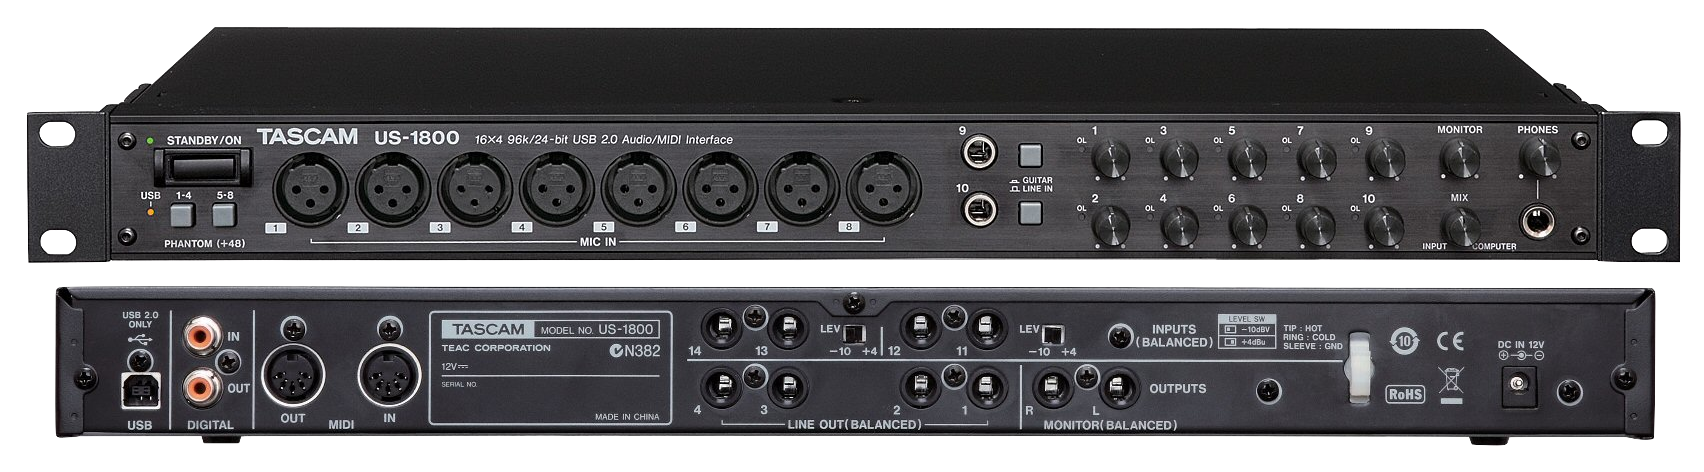 TASCAM US-2000 Audio Interface Driver for Windows